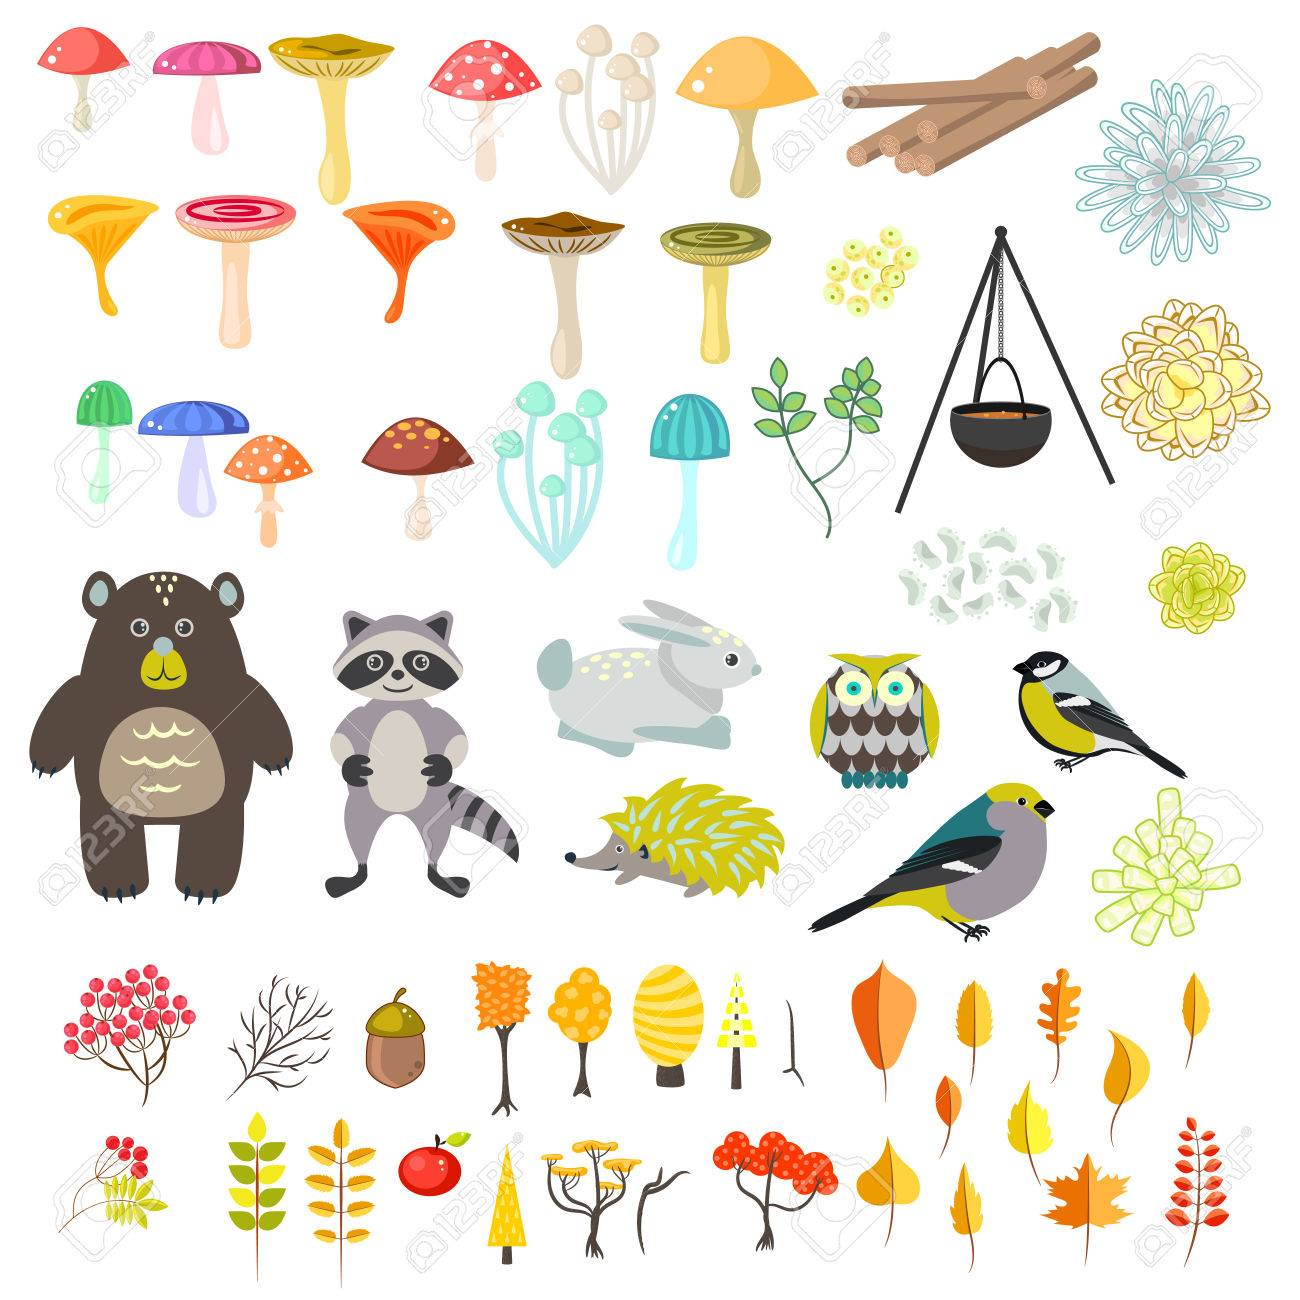 Animals and nature vector clipart objects. Cartoon forest animals,...